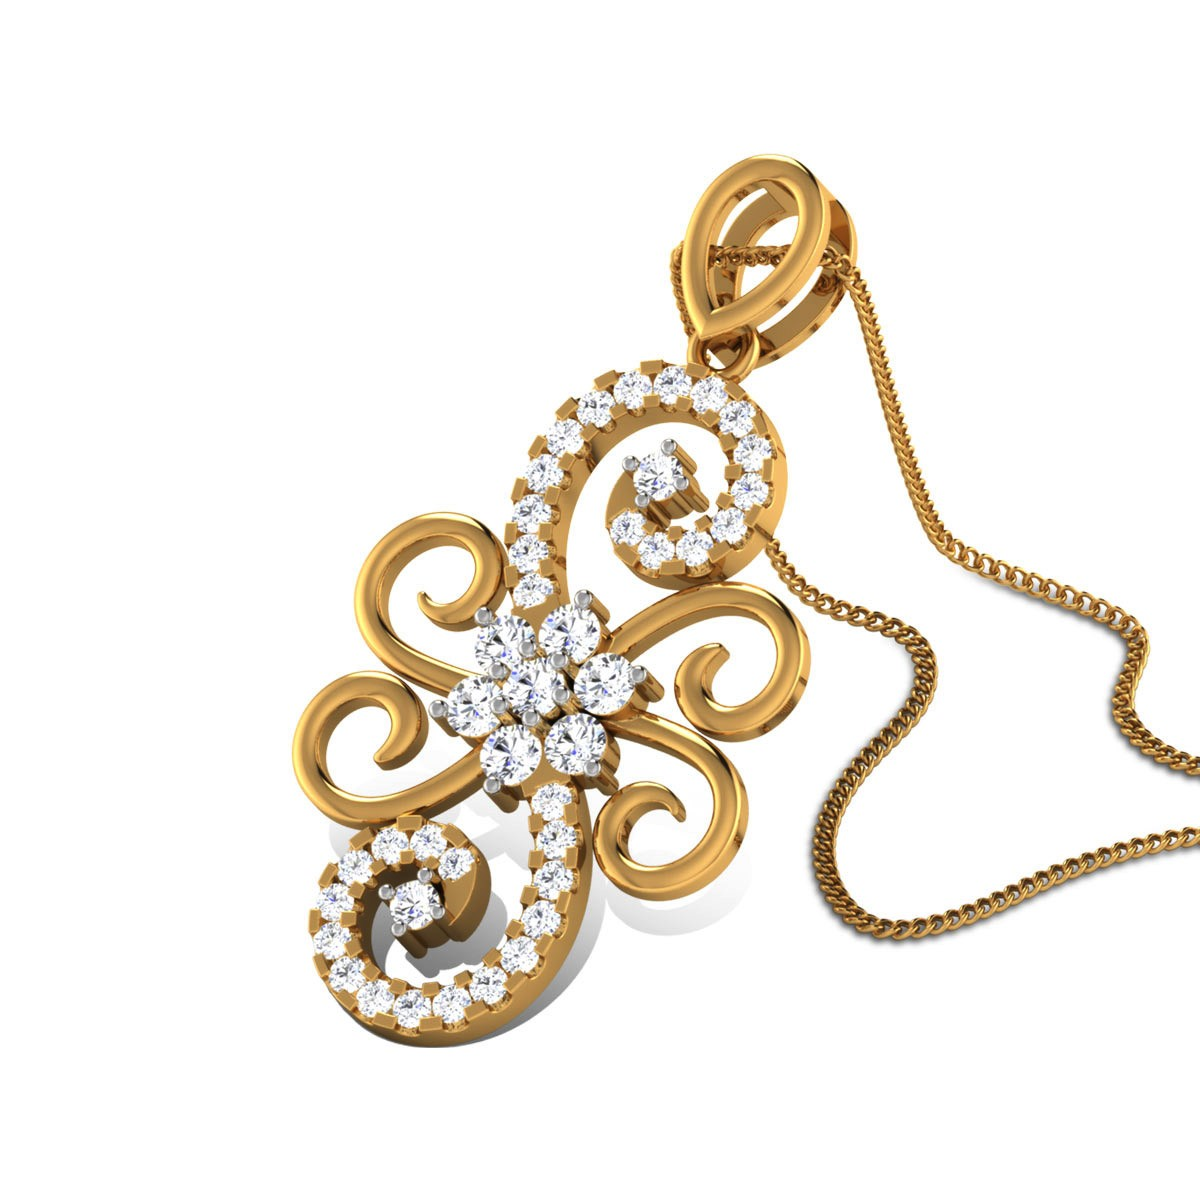 Atulya Diamond Pendant